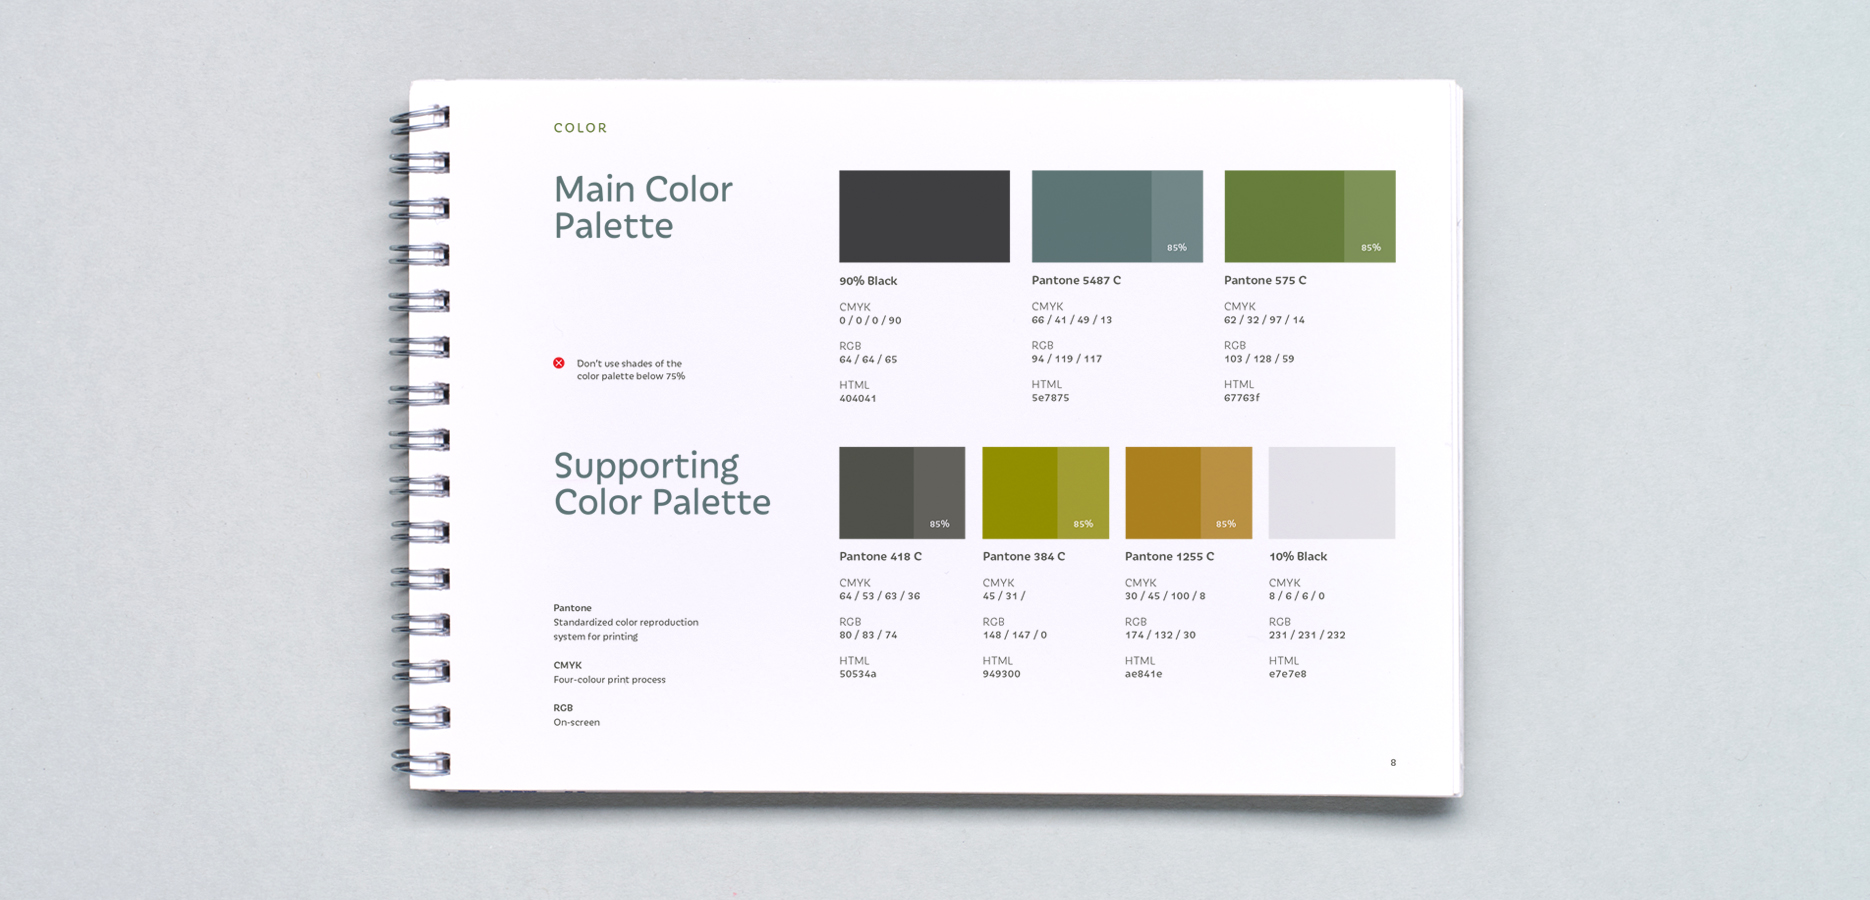 Style guide inside color palettes